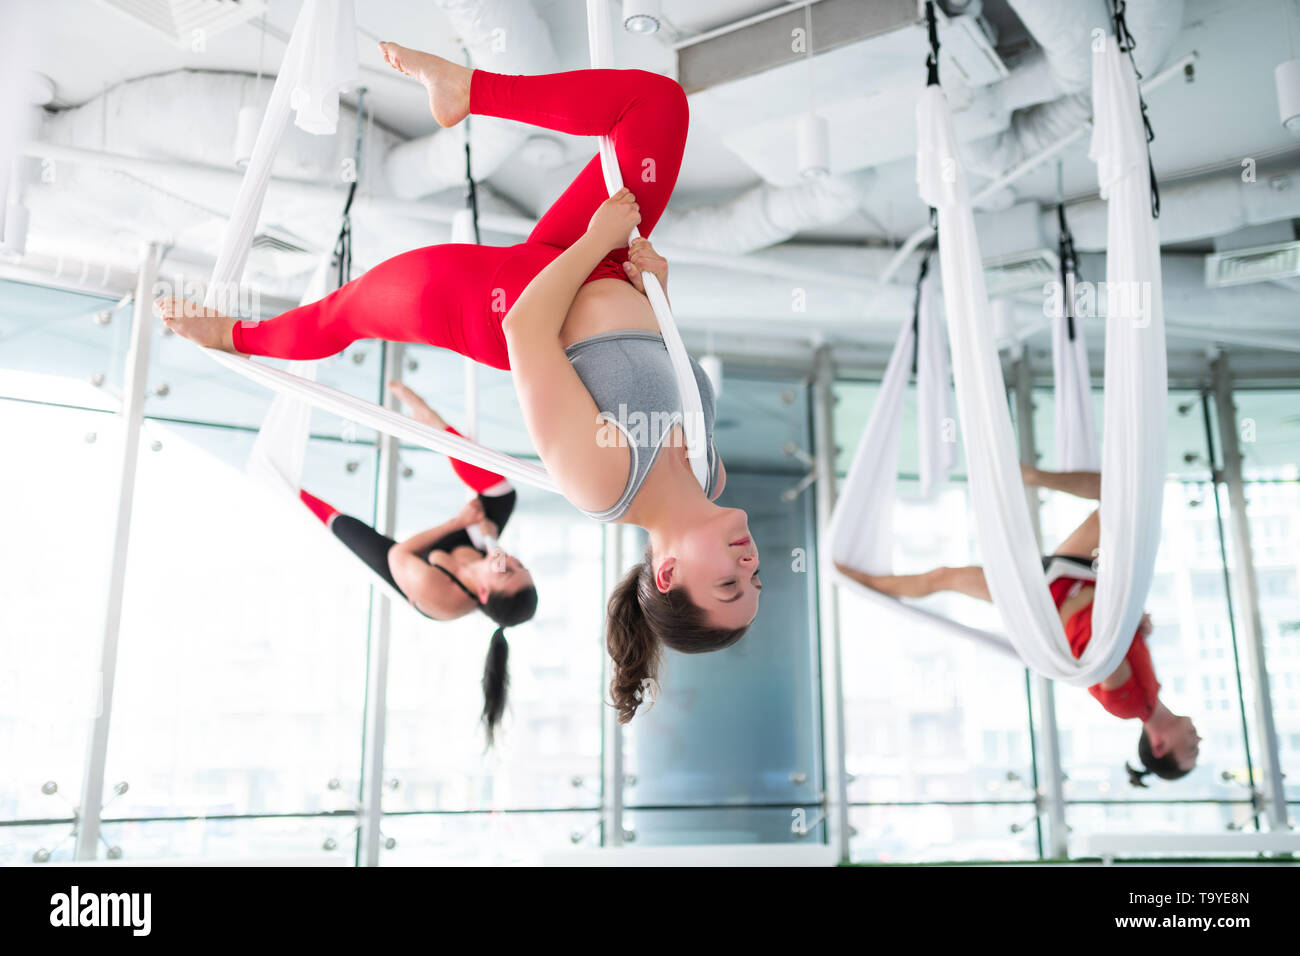 Dark-haired trainer in red leggings showing nice aerial yoga pose - Stock Image